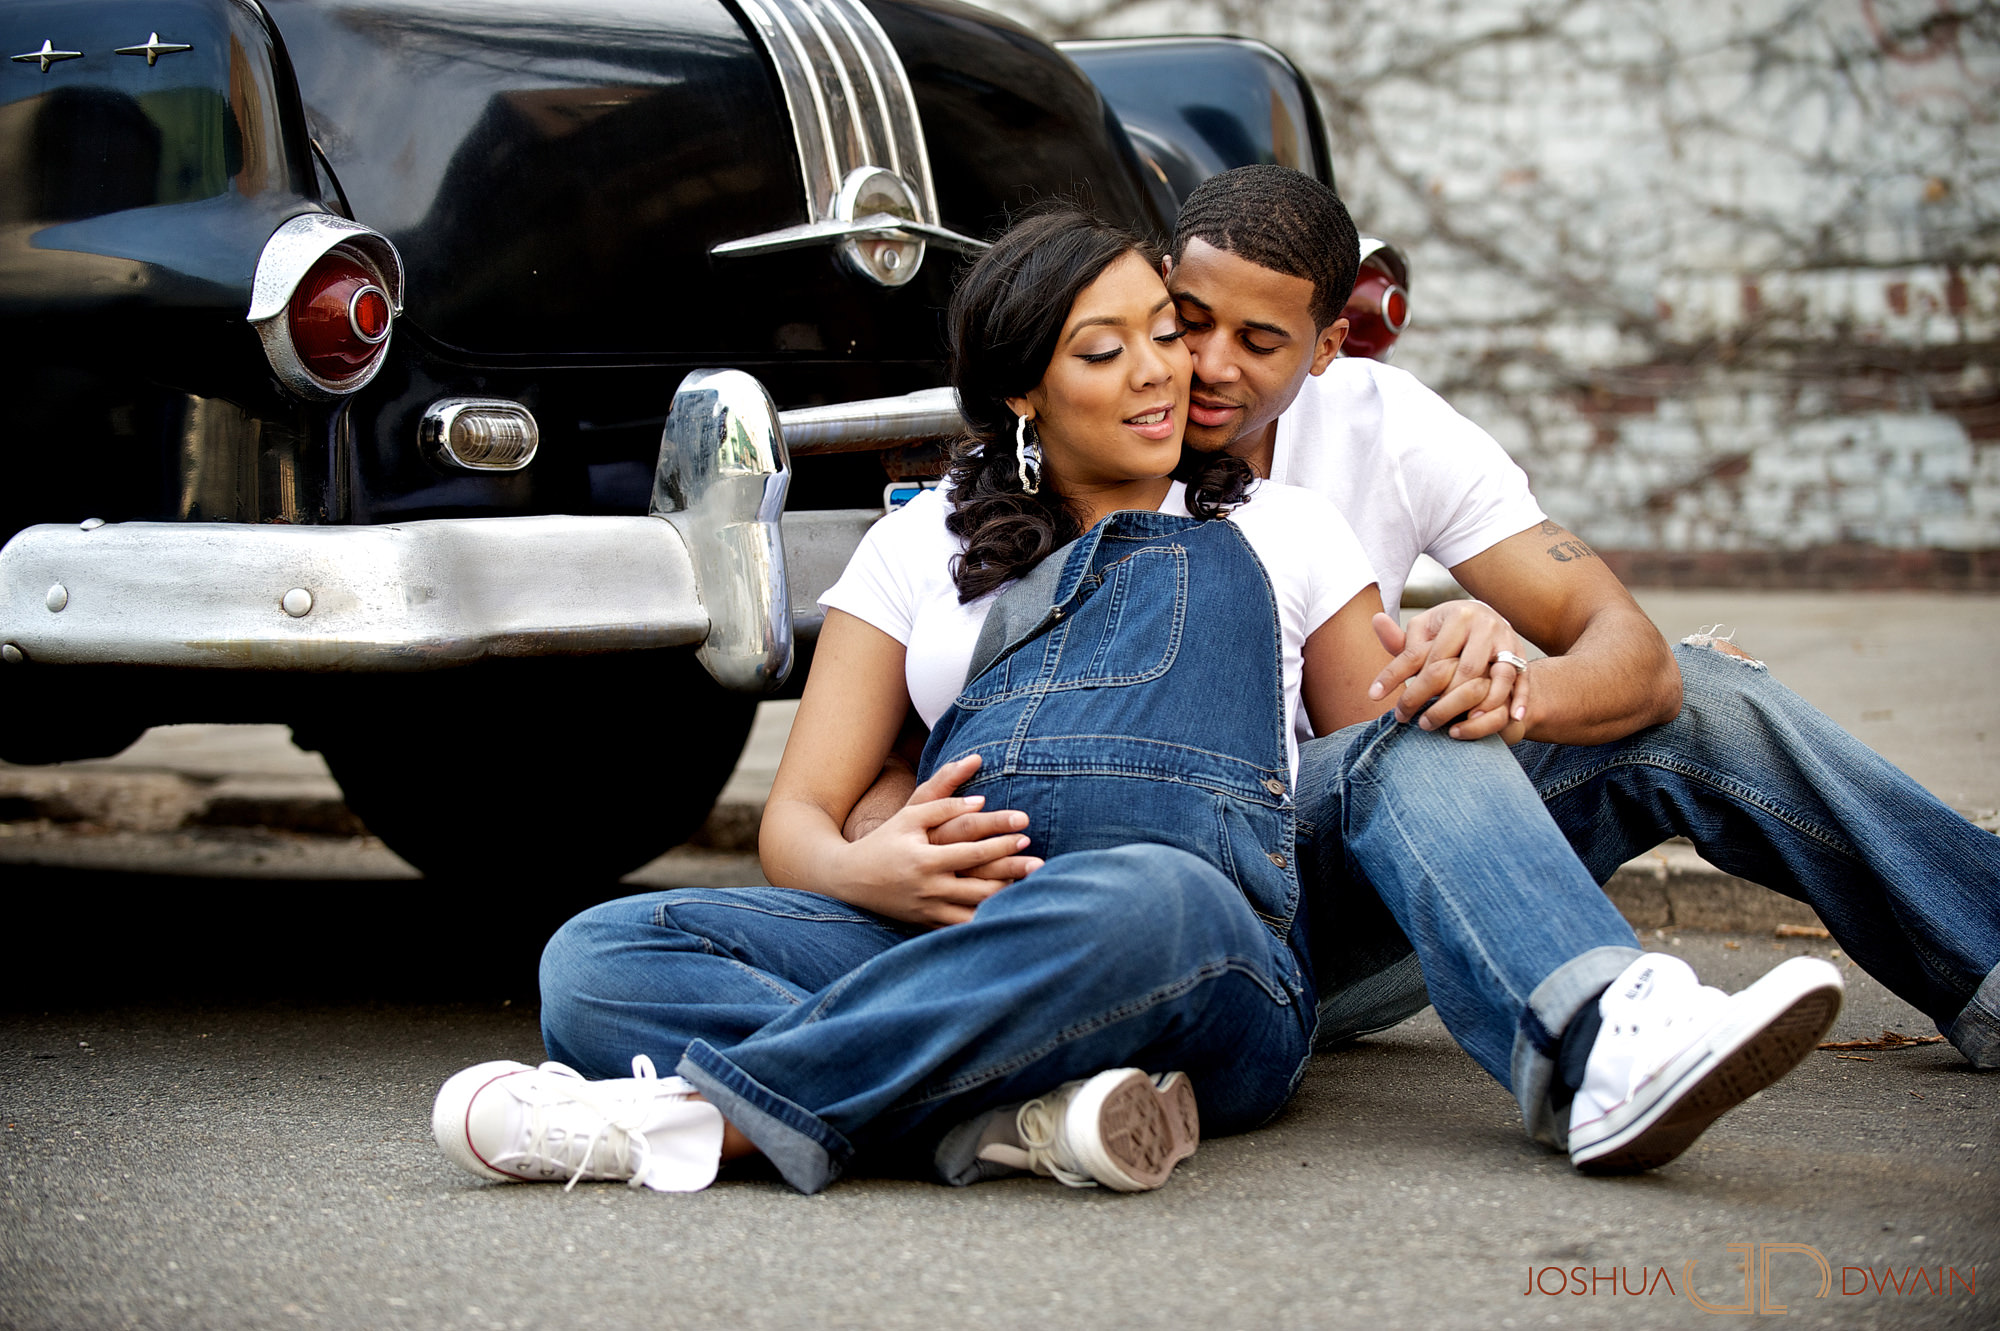 khadeen-ellis-008-new-york-city-maternity-photographer-joshua-dwain-2011-03-18_KD_066